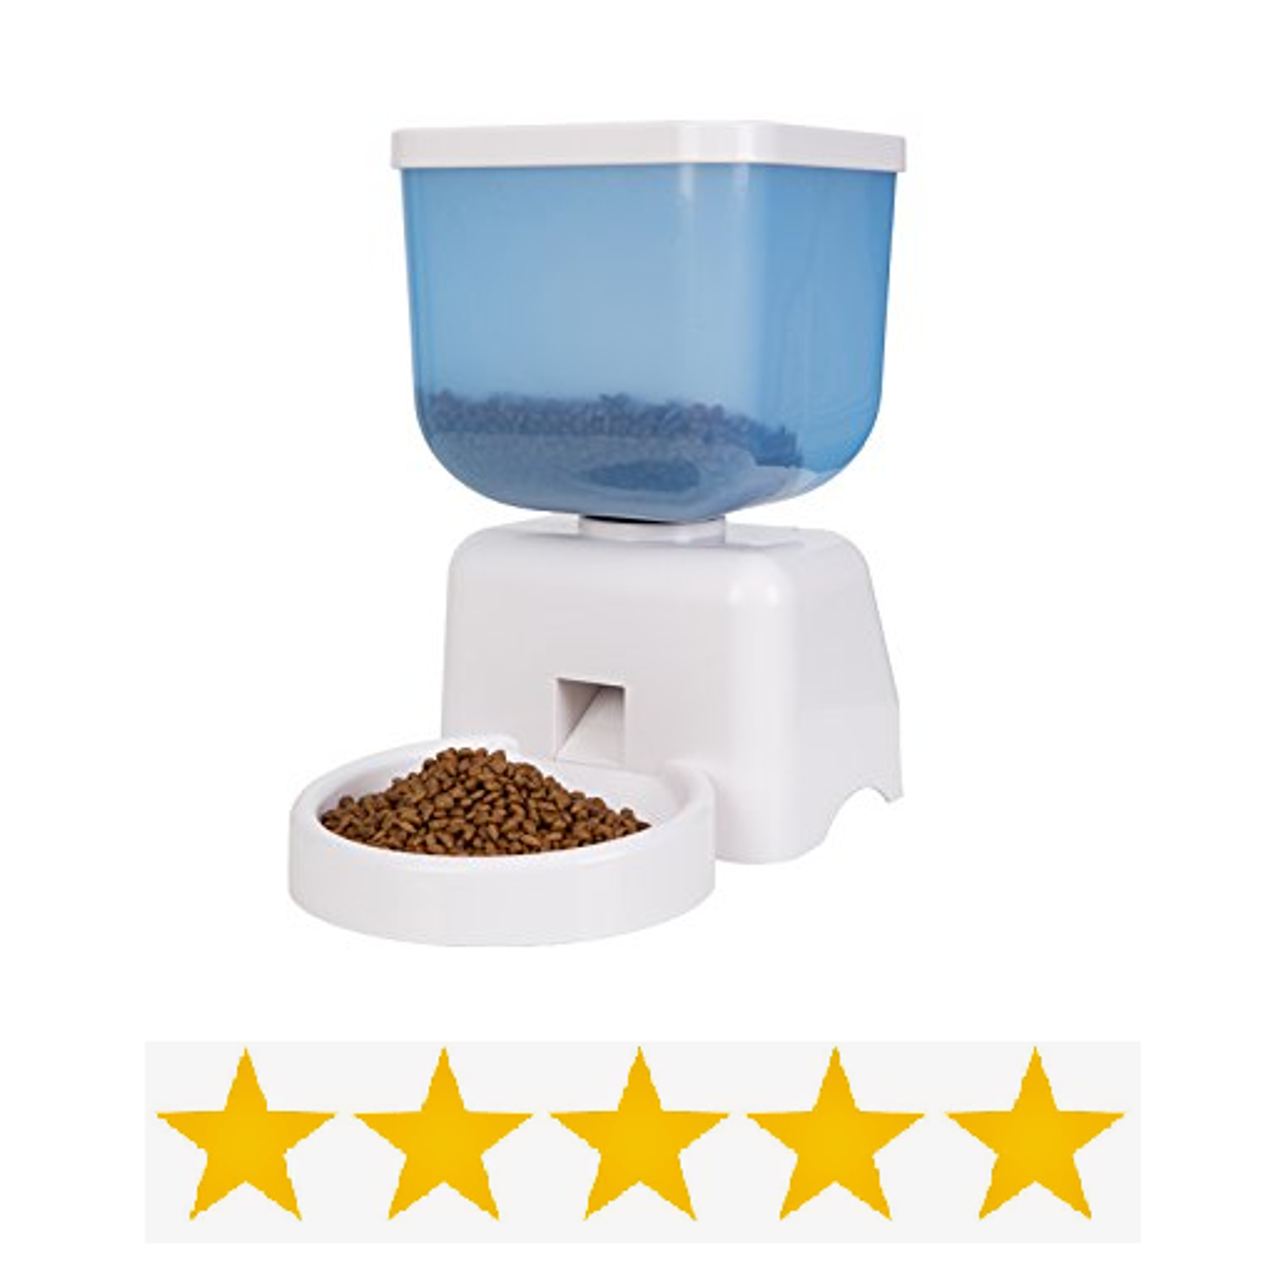 White Electronic Portion Automatic Pet Feeder Pet Food Dispenser 5 Liters Capacity For Cats Small Dogs Rabbits Etc Toronto Canada